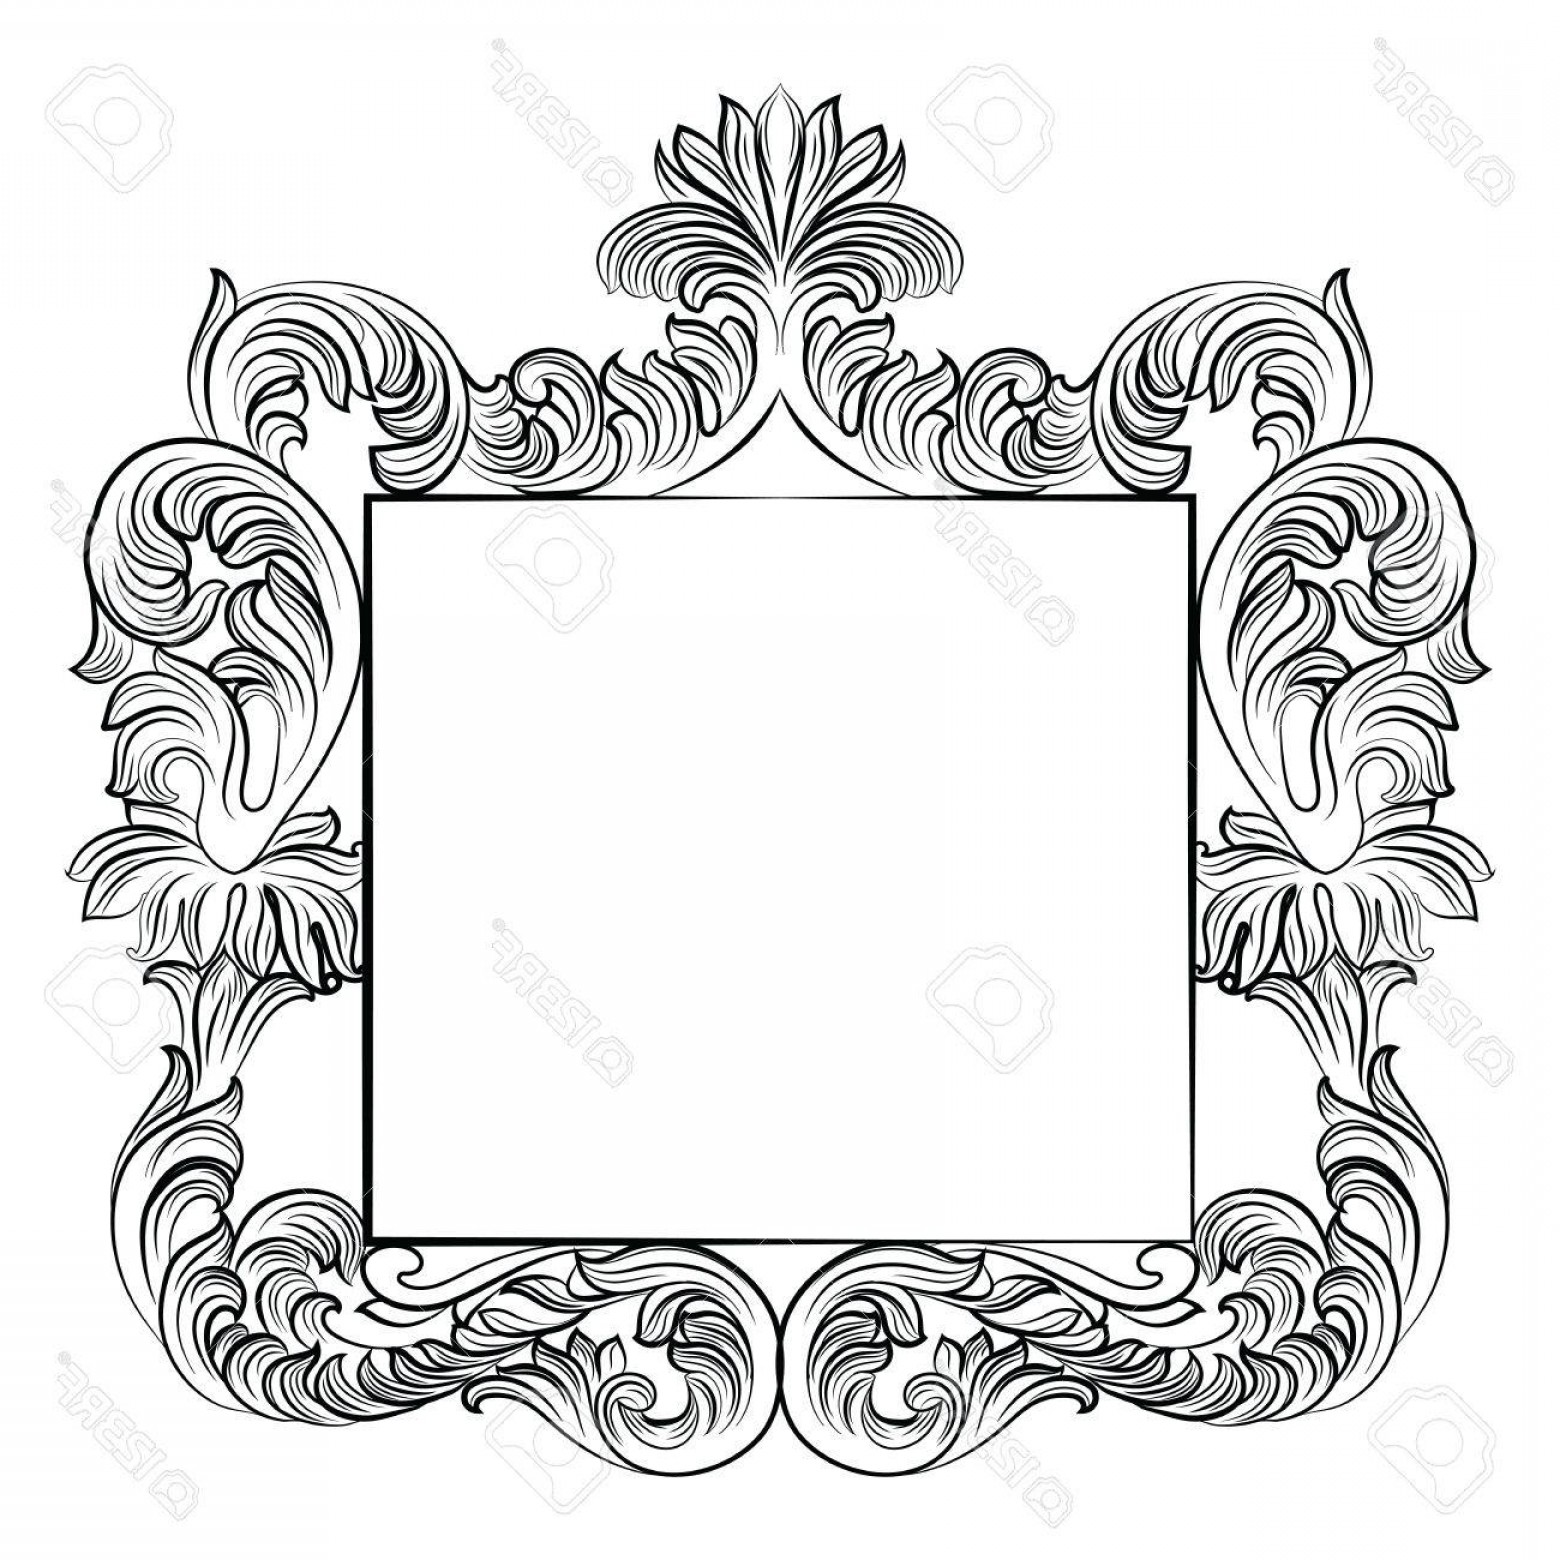 Rococo Frame Vector: Photostock Vector Vintage Imperial Baroque Rococo Frame Vector French Luxury Rich Carved Ornamented Decor Victorian We